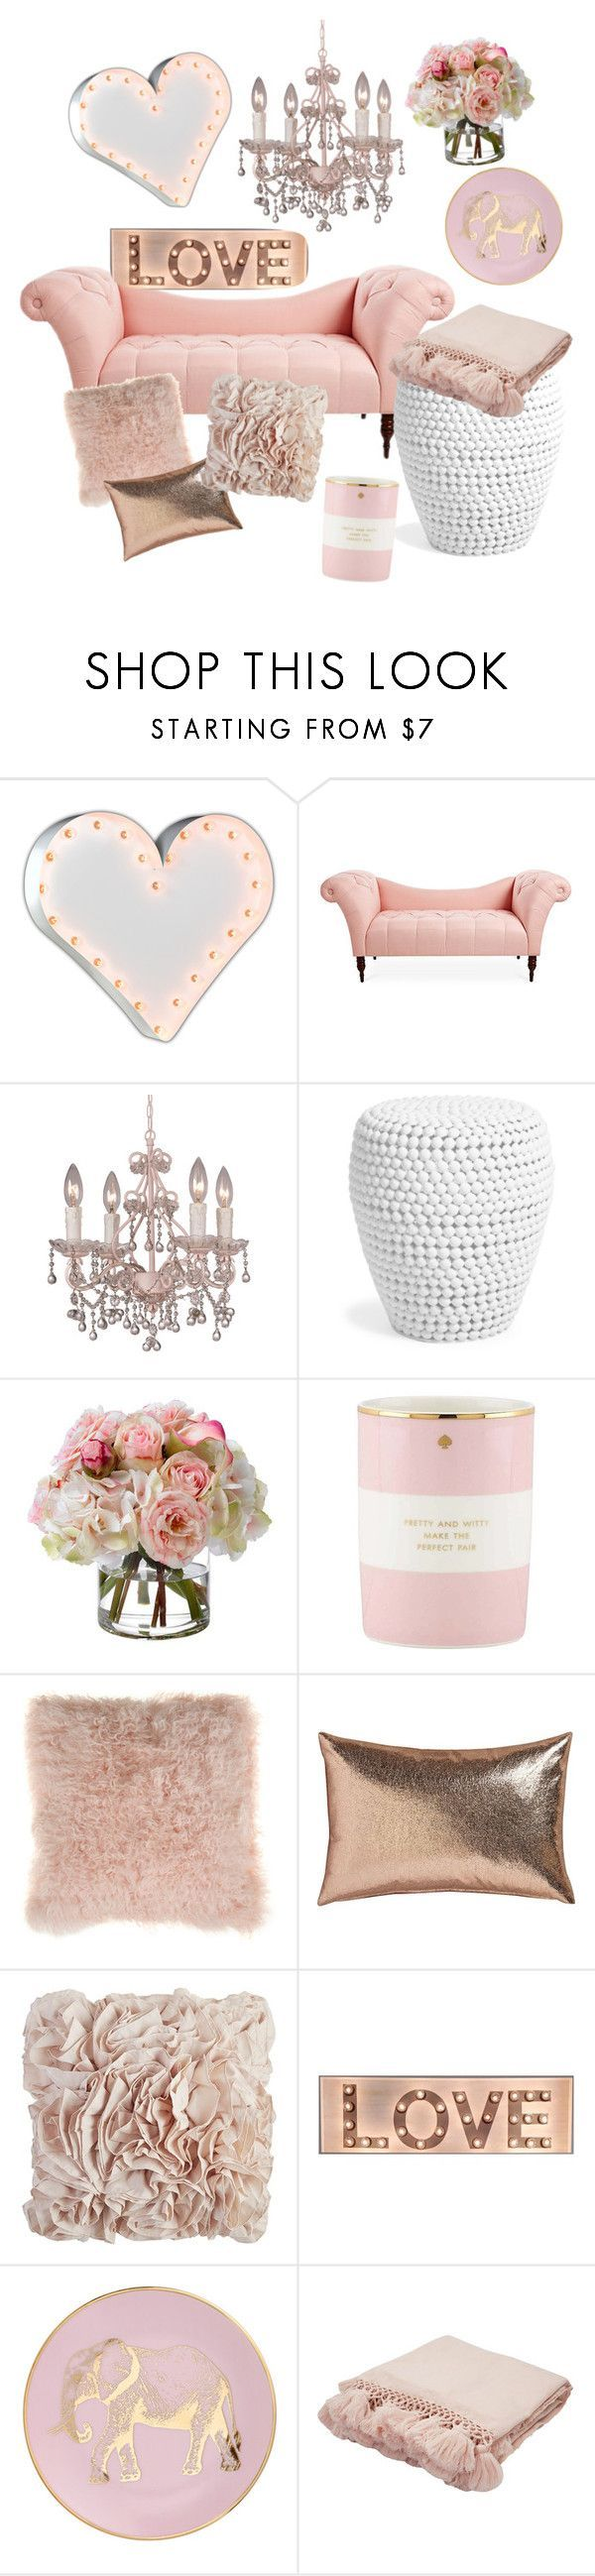 """The love room"" by evelyn-anita ❤️ liked on Polyvore featuring interior, interiors, interior design, home, home decor, interior decorating, Vintage Marquee Lights, Crystorama, Diane James and Kate Spade"